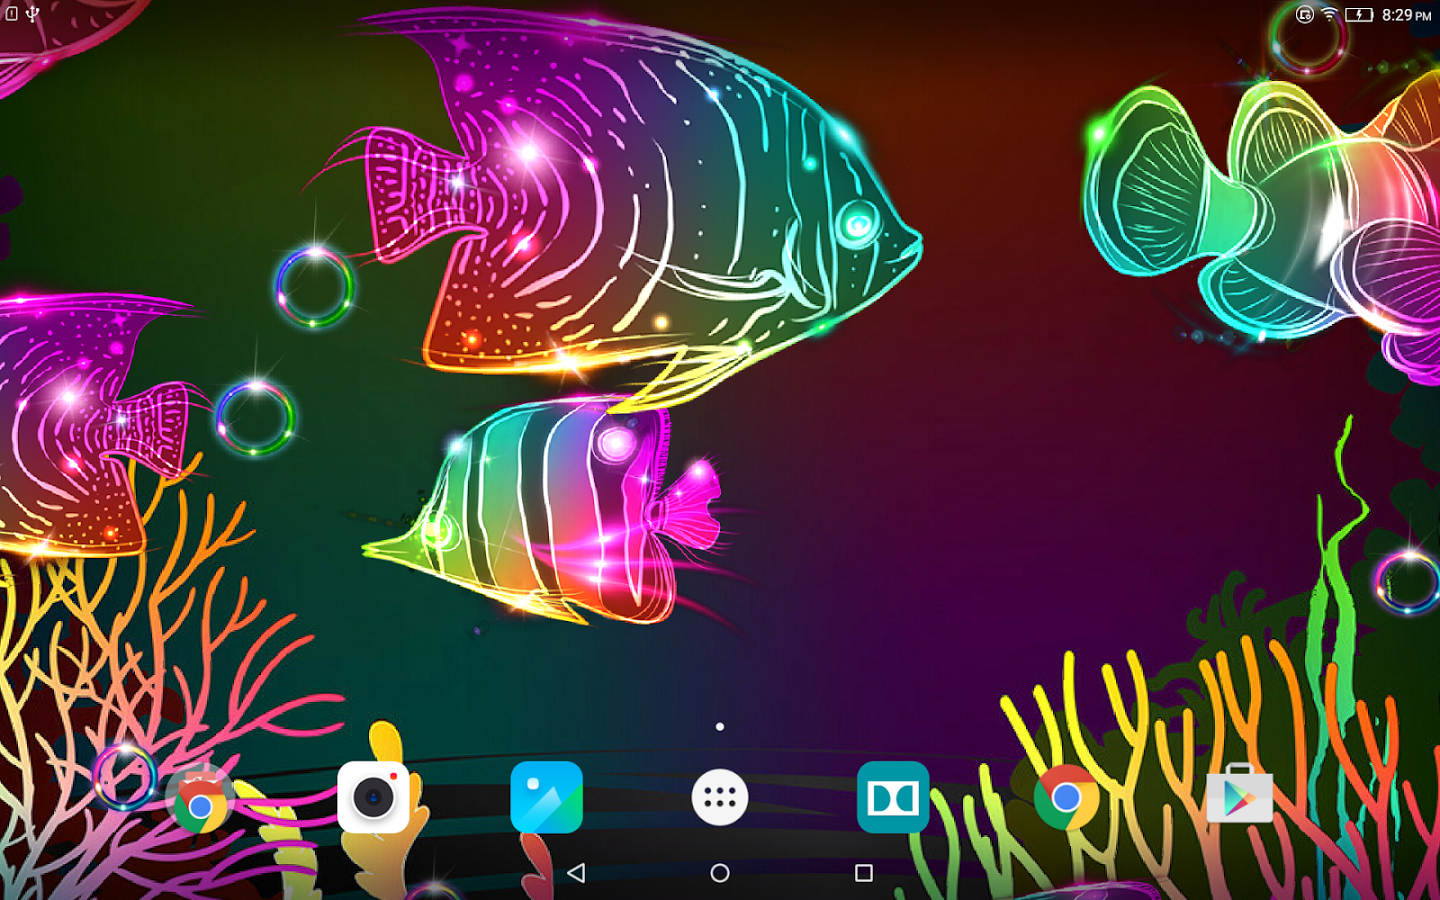 Neon Fish Live Wallpaper - Android Apps on Google Play | BING IMAGES | Live wallpapers, Aquarium ...